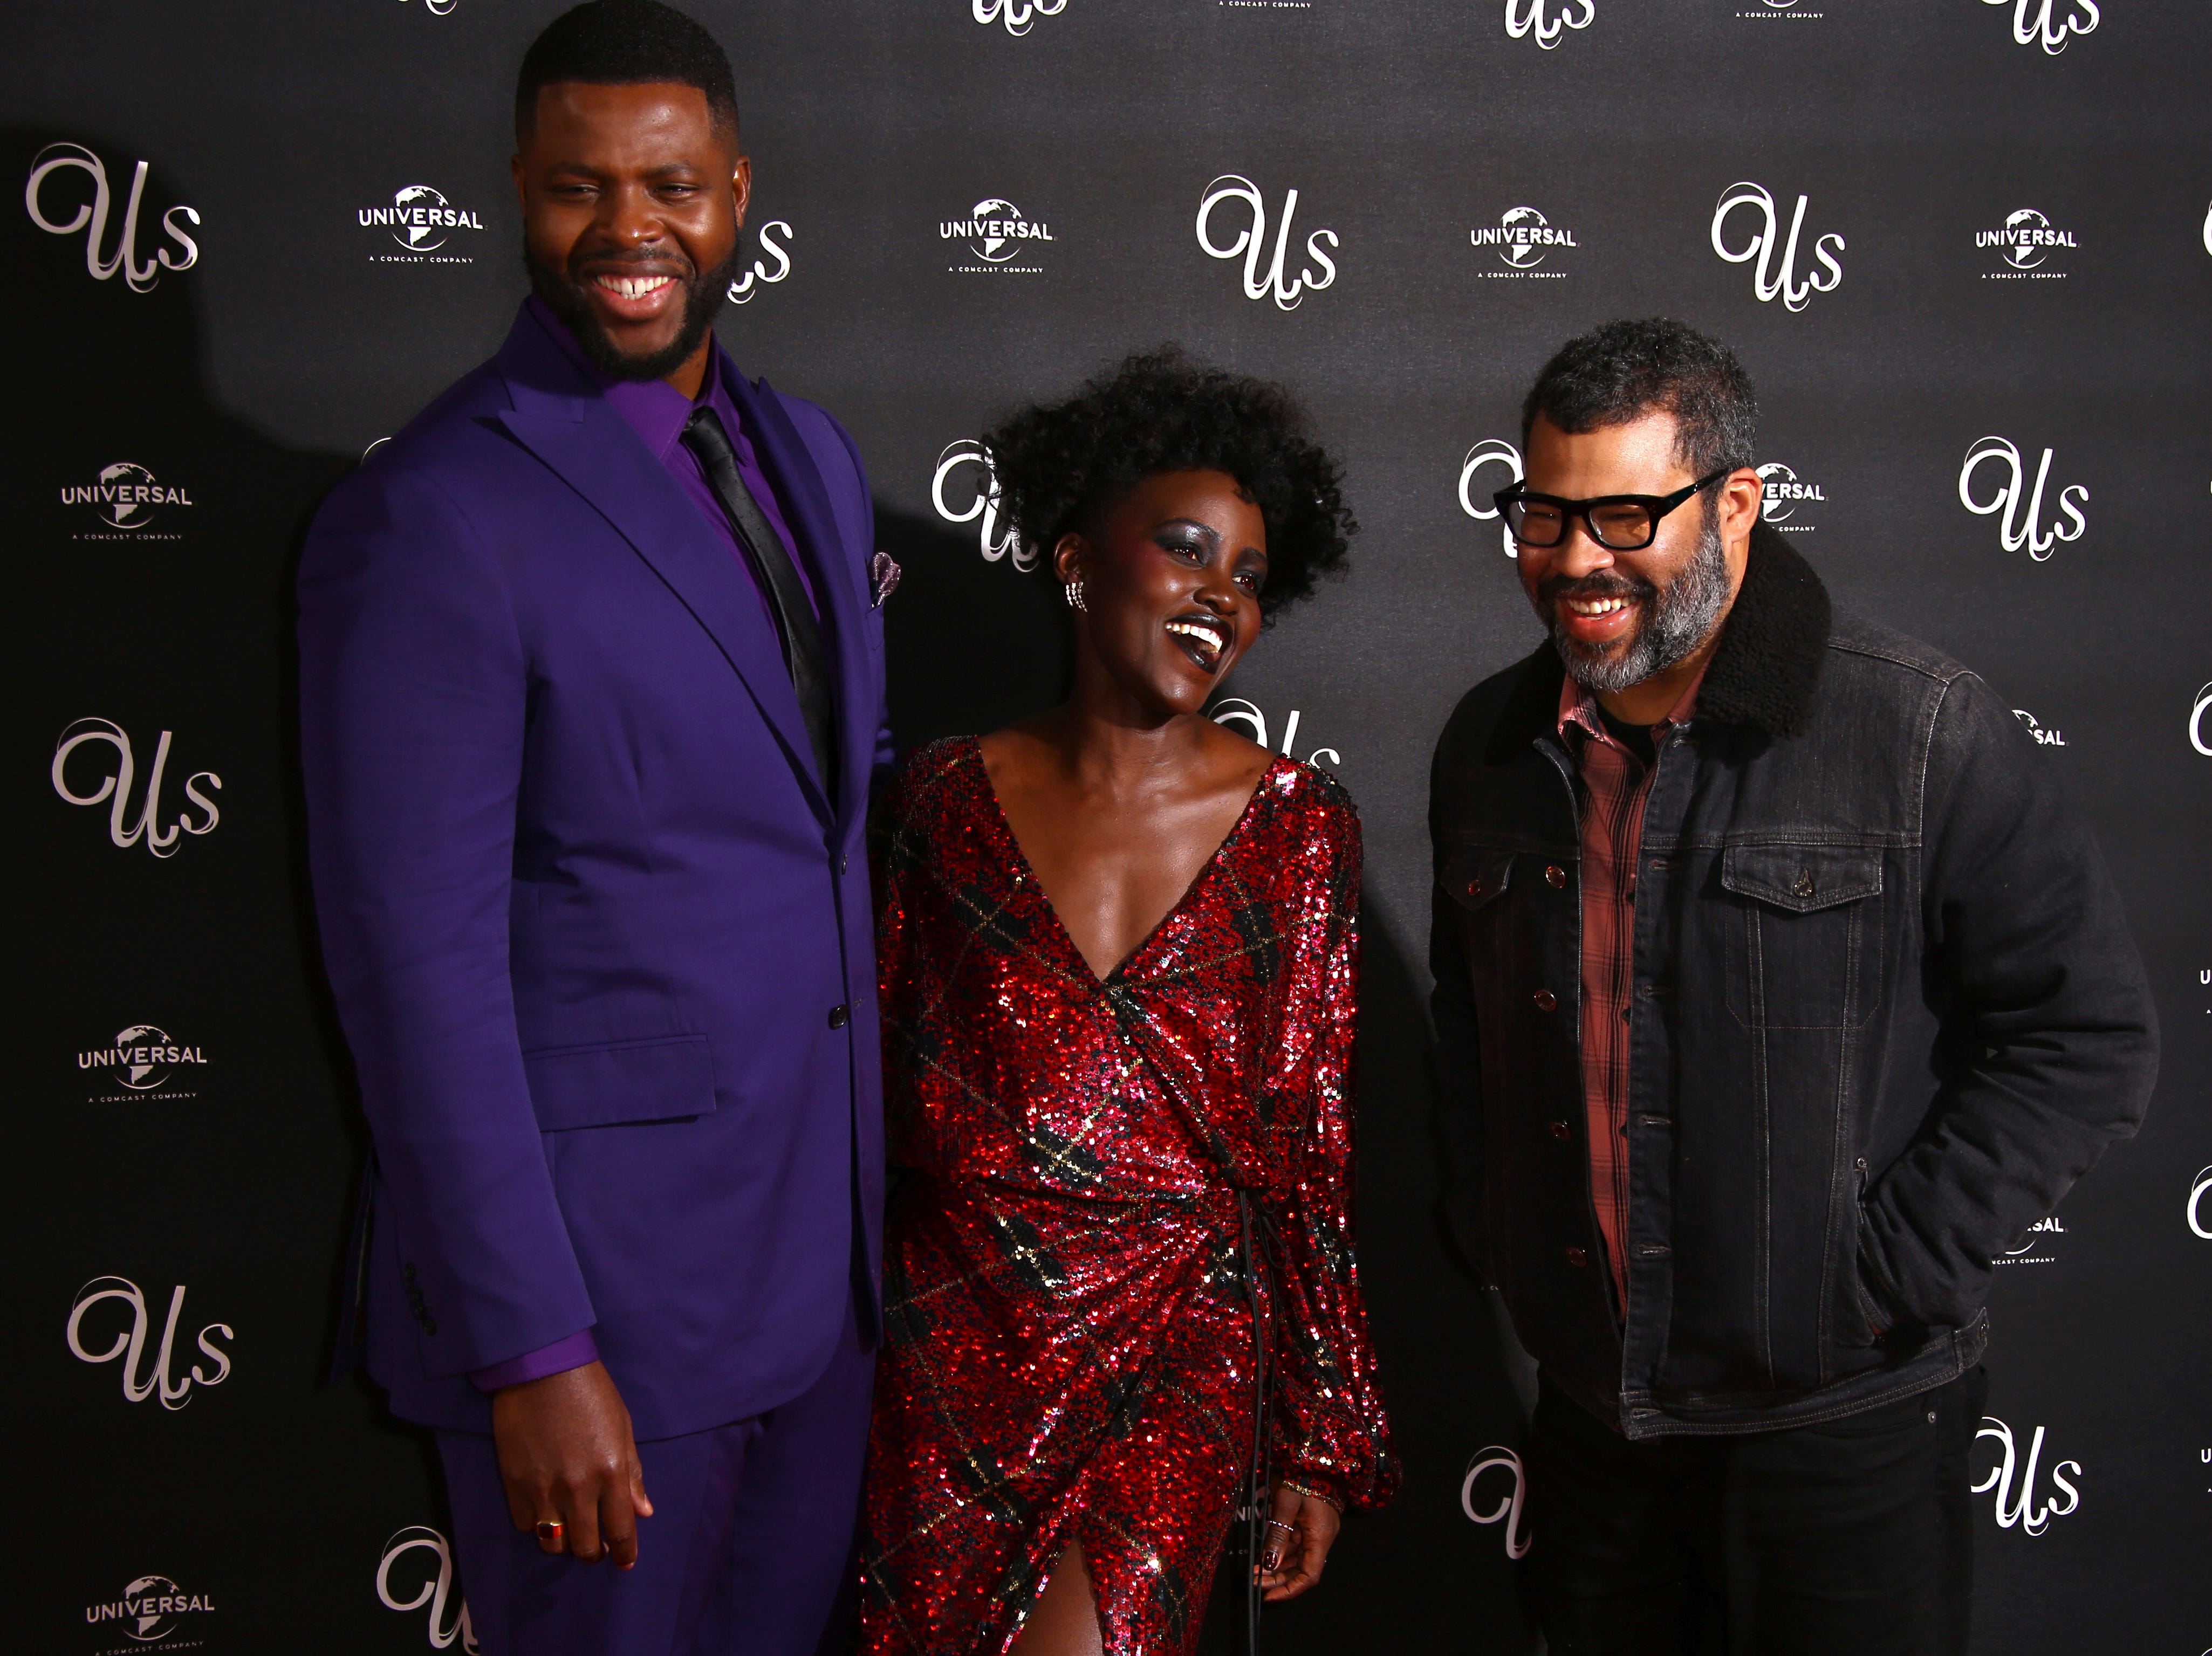 Actors Winston Duke, from left, Lupita Nyong'o and director Jordan Peele pose for photographers upon arrival at the premiere of the film 'Us' in London, Thursday, March 14, 2019. (Photo by Joel C Ryan/Invision/AP) ORG XMIT: LENT106